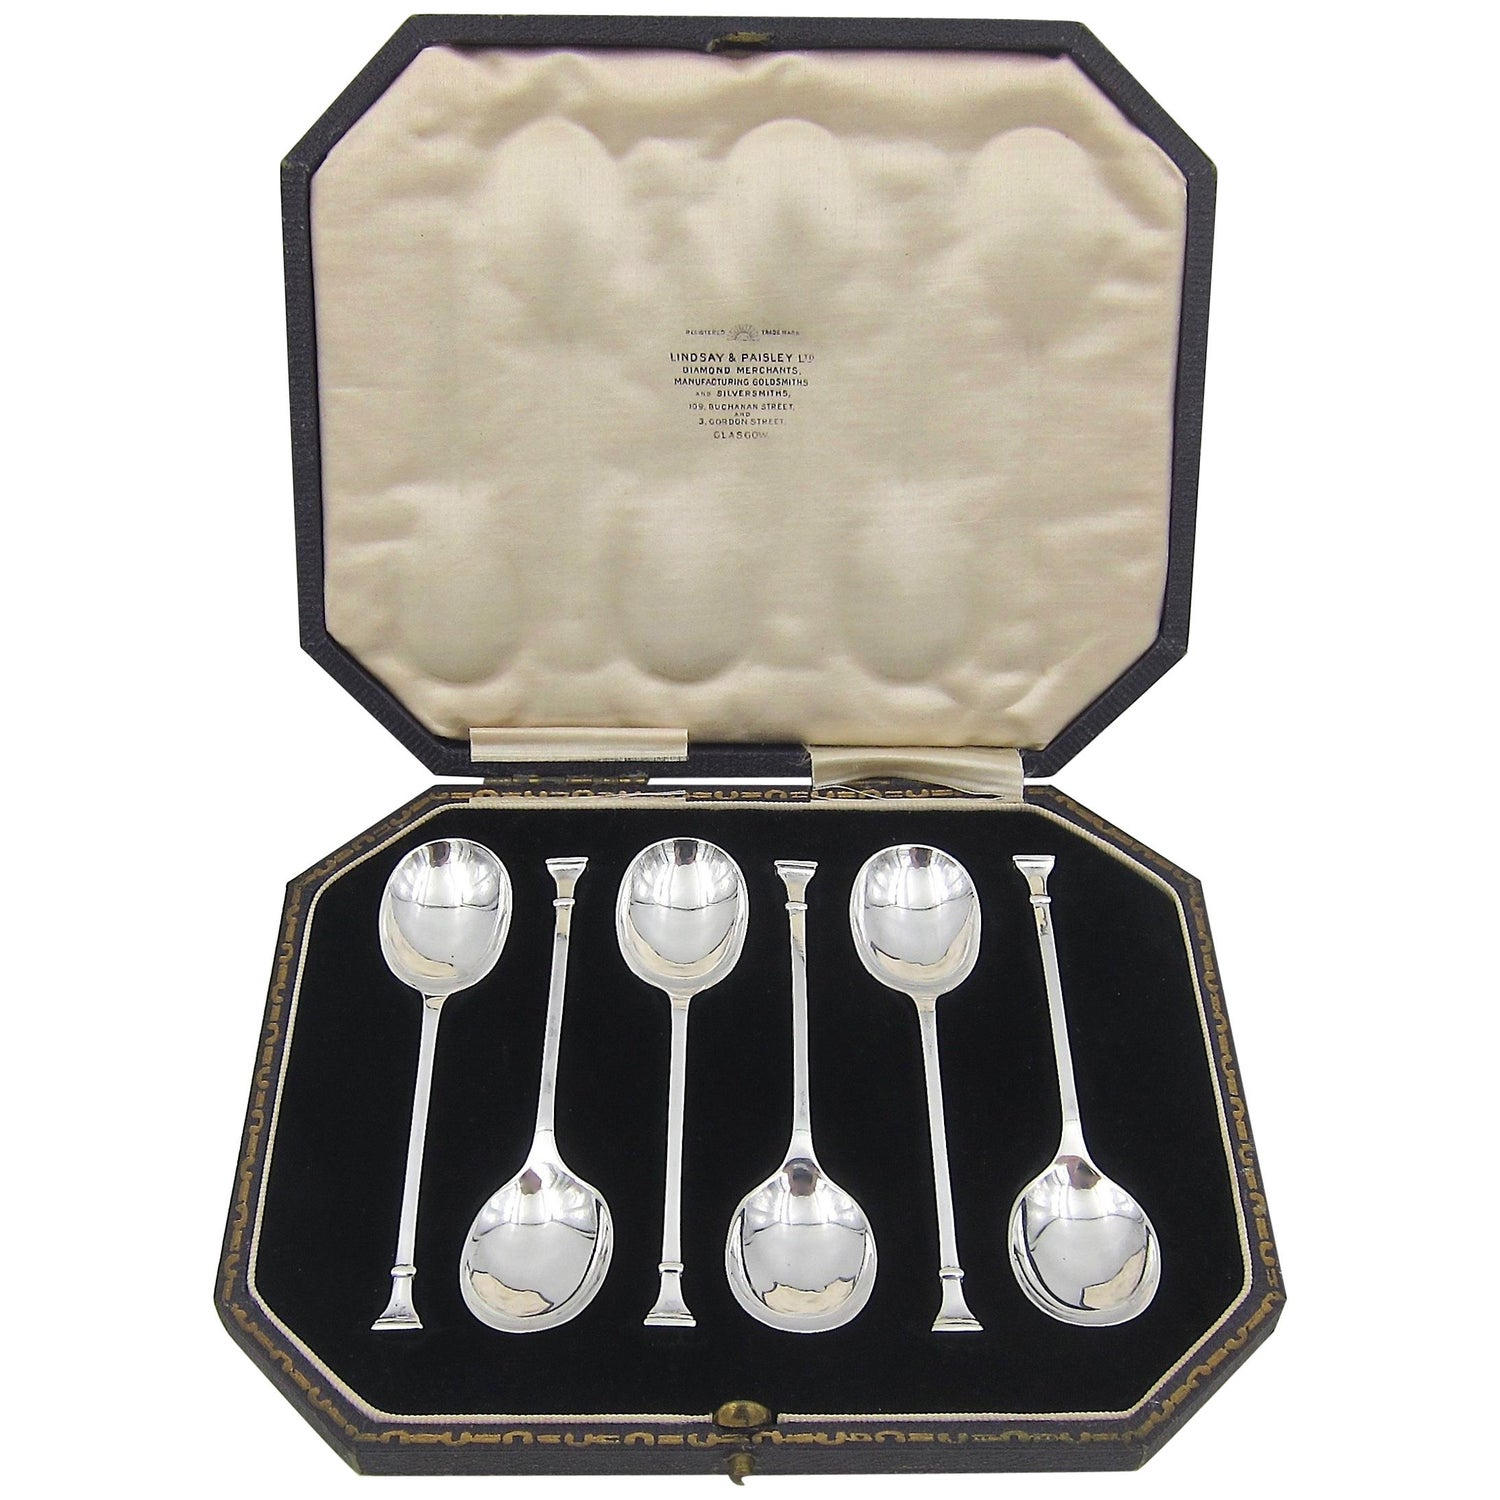 Sheffield Hand Etched Berry SpoonsVictorian Gilded Berry SpoonsChased Serving Spoons 1905Antique Serving Spoons Walker /& Hall c